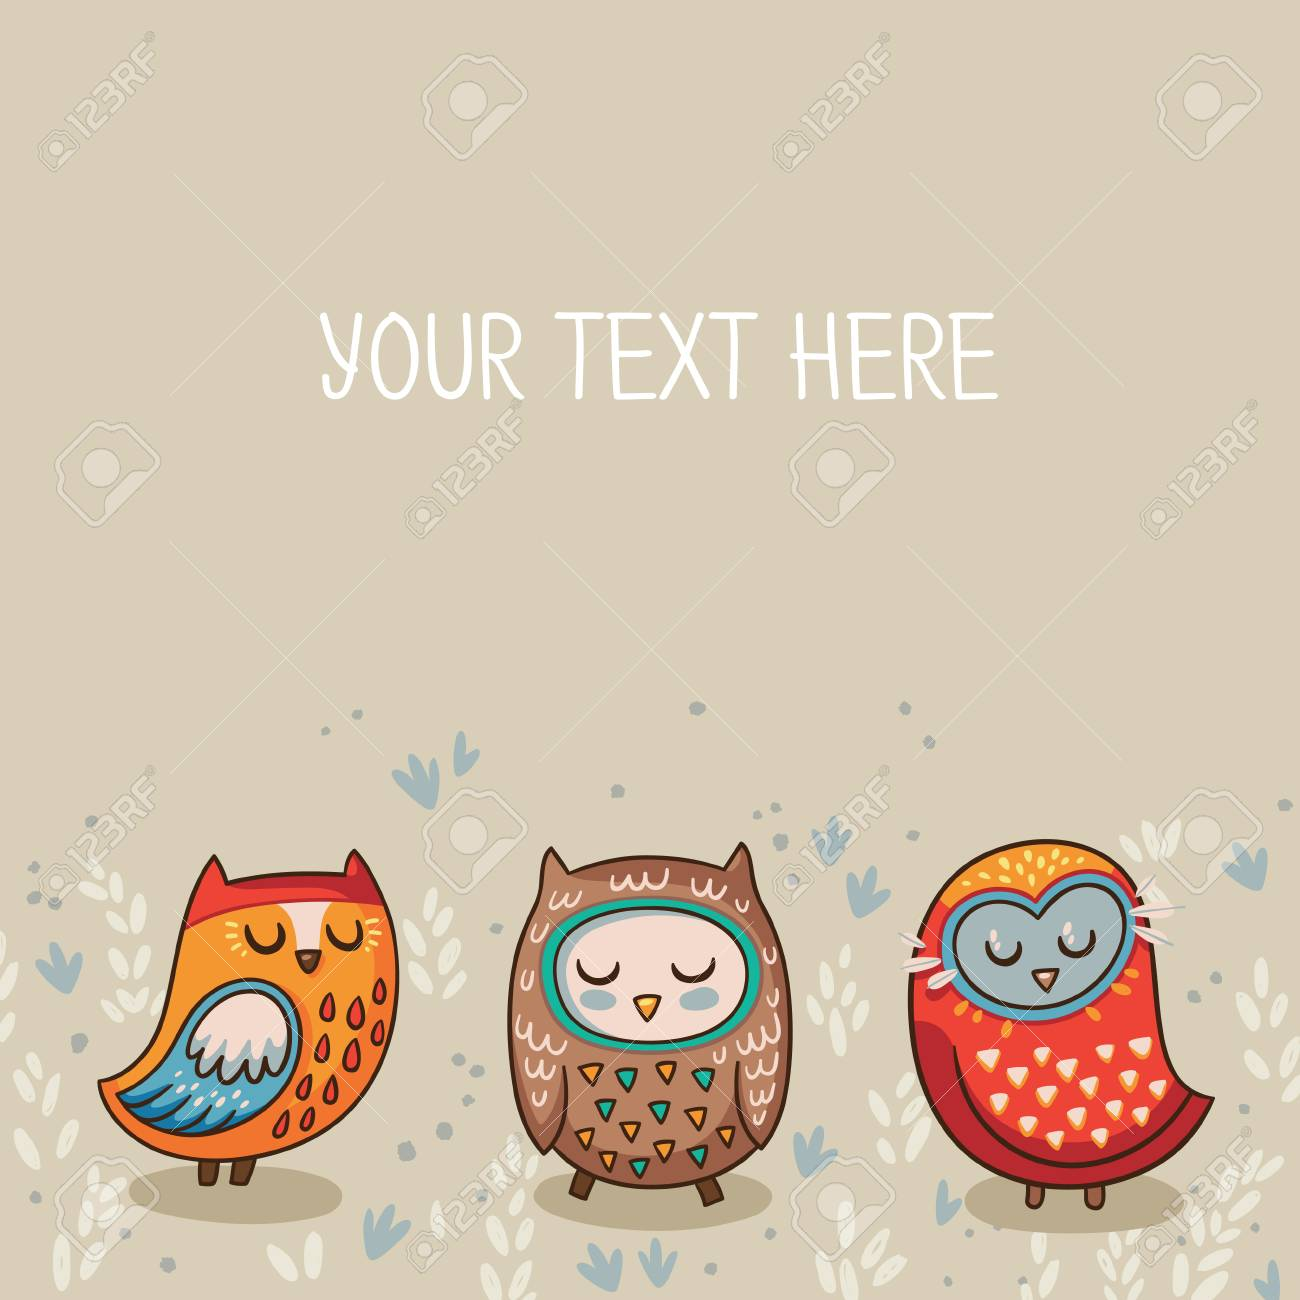 Owls Cute Greeting Card And Sample Text Template For Design